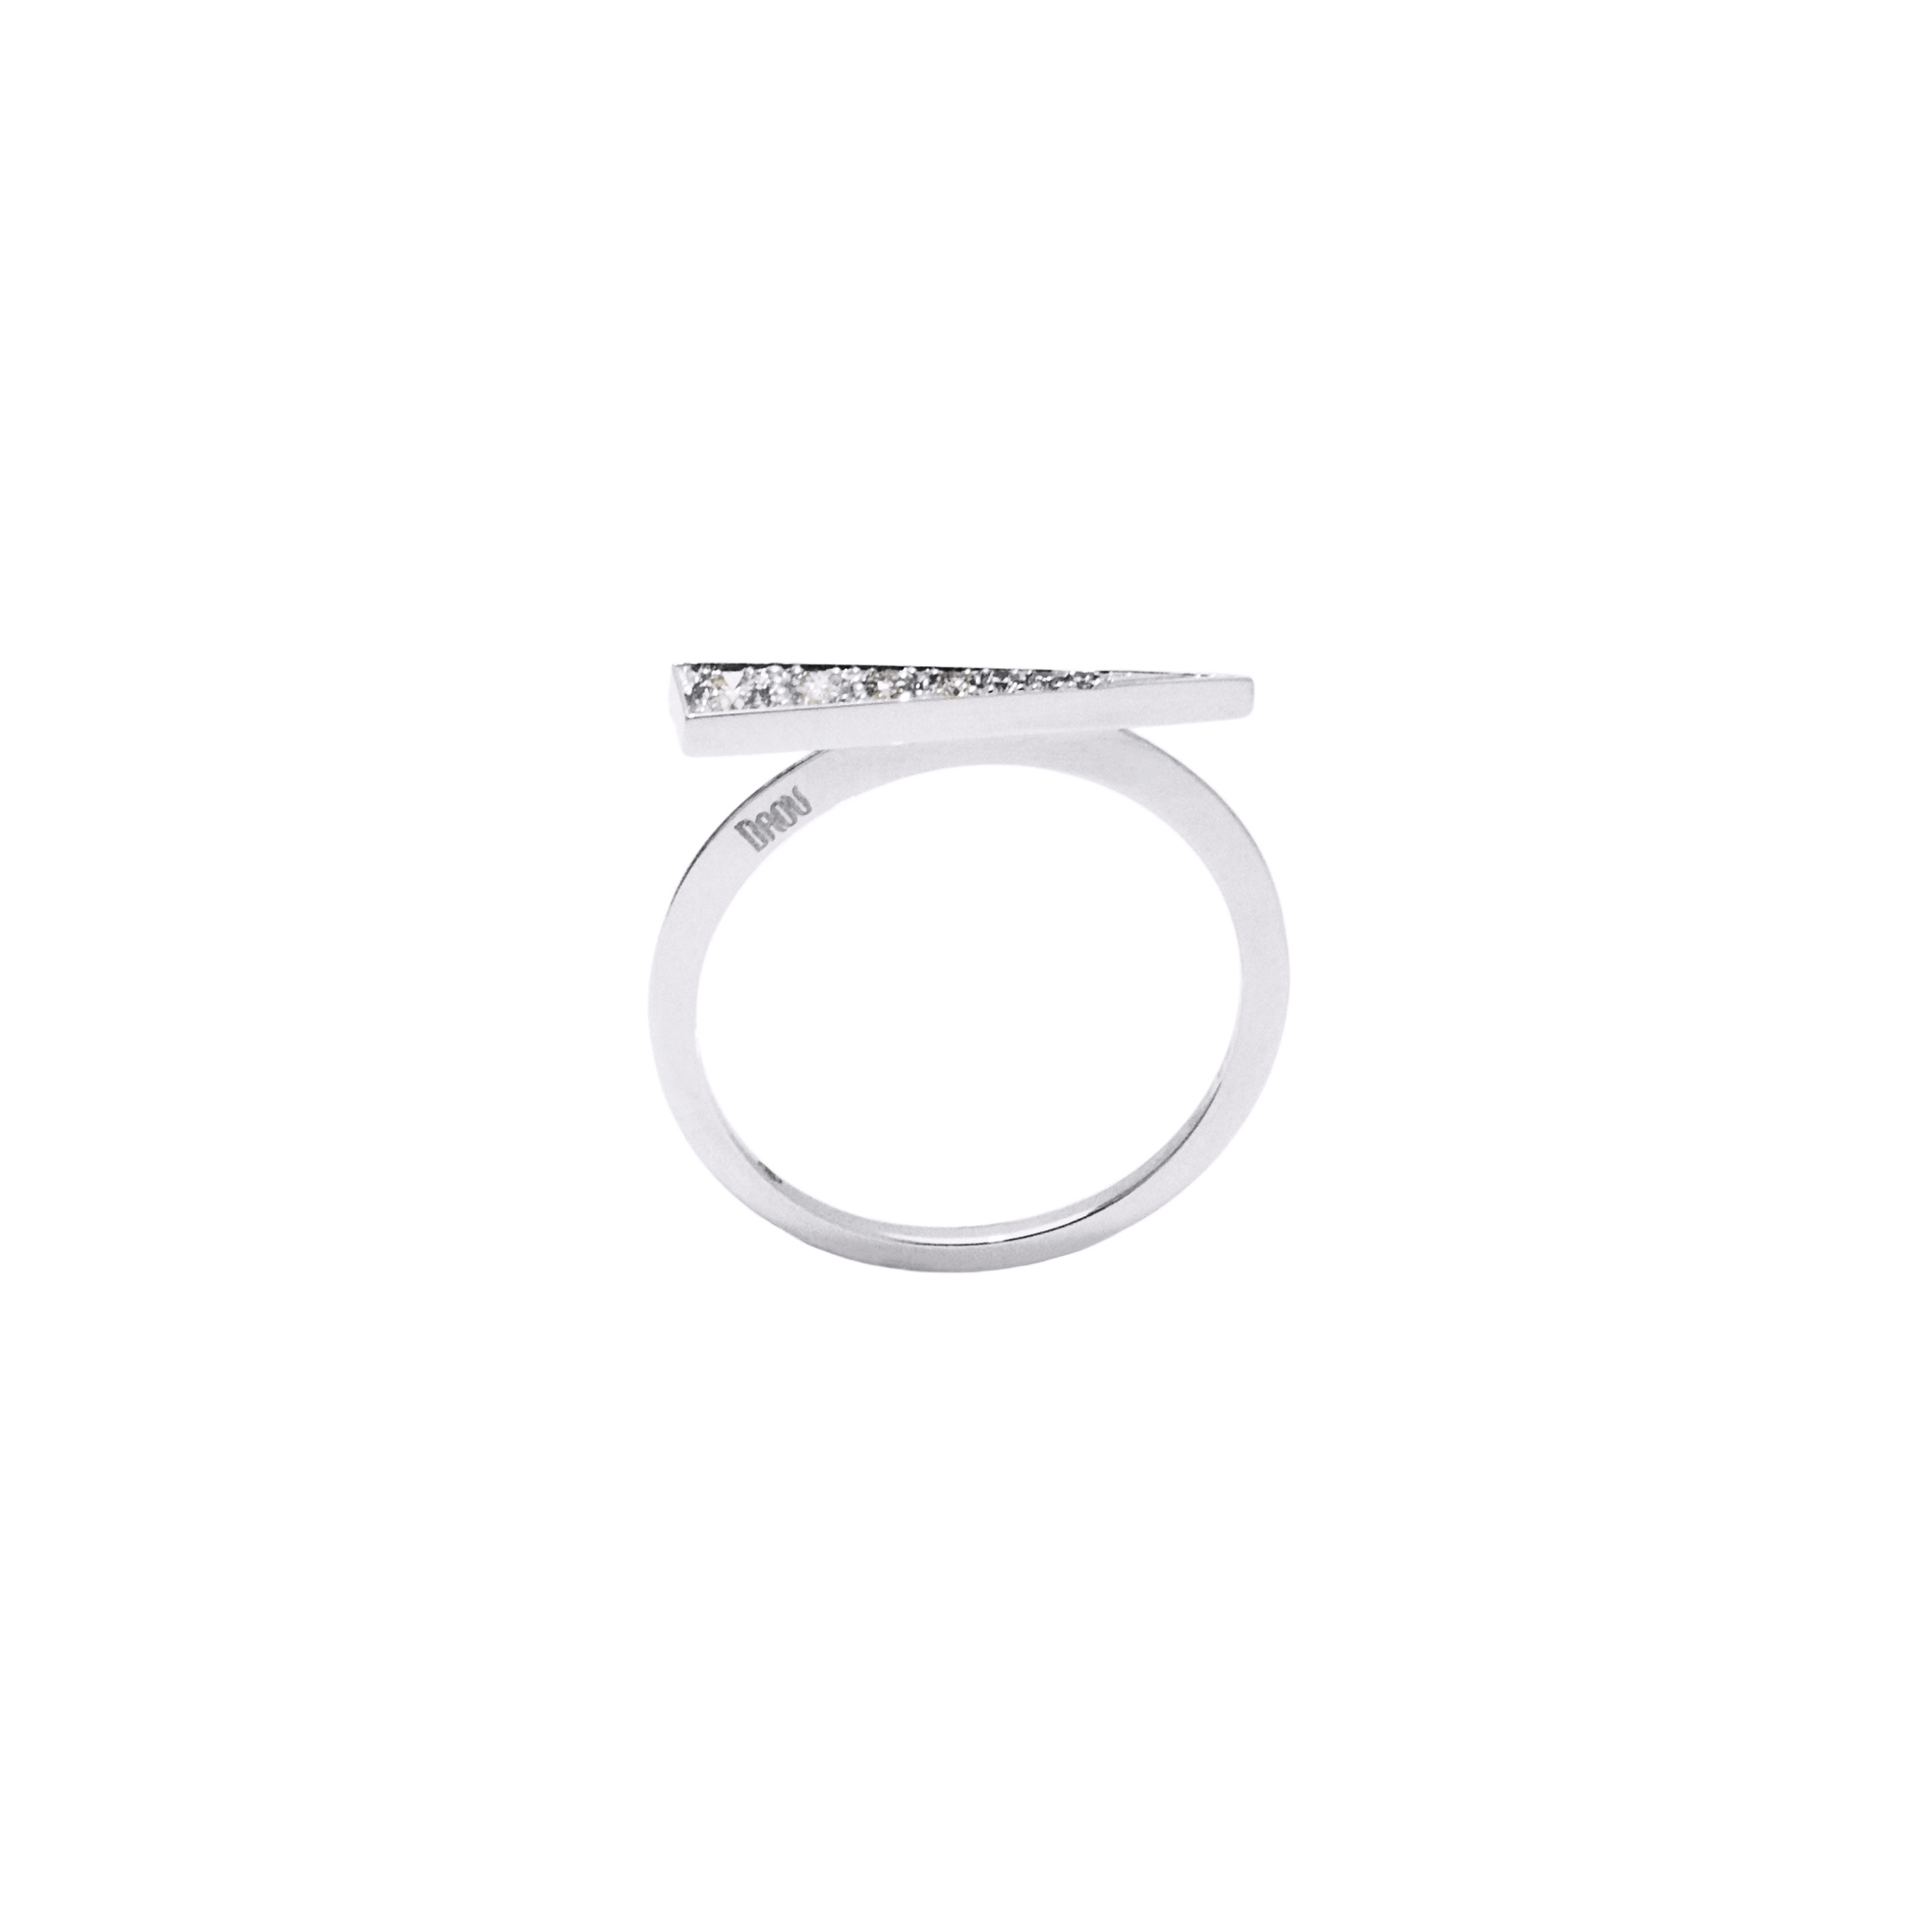 Spark Ring - Diamond White Gold by  on curated-crowd.com